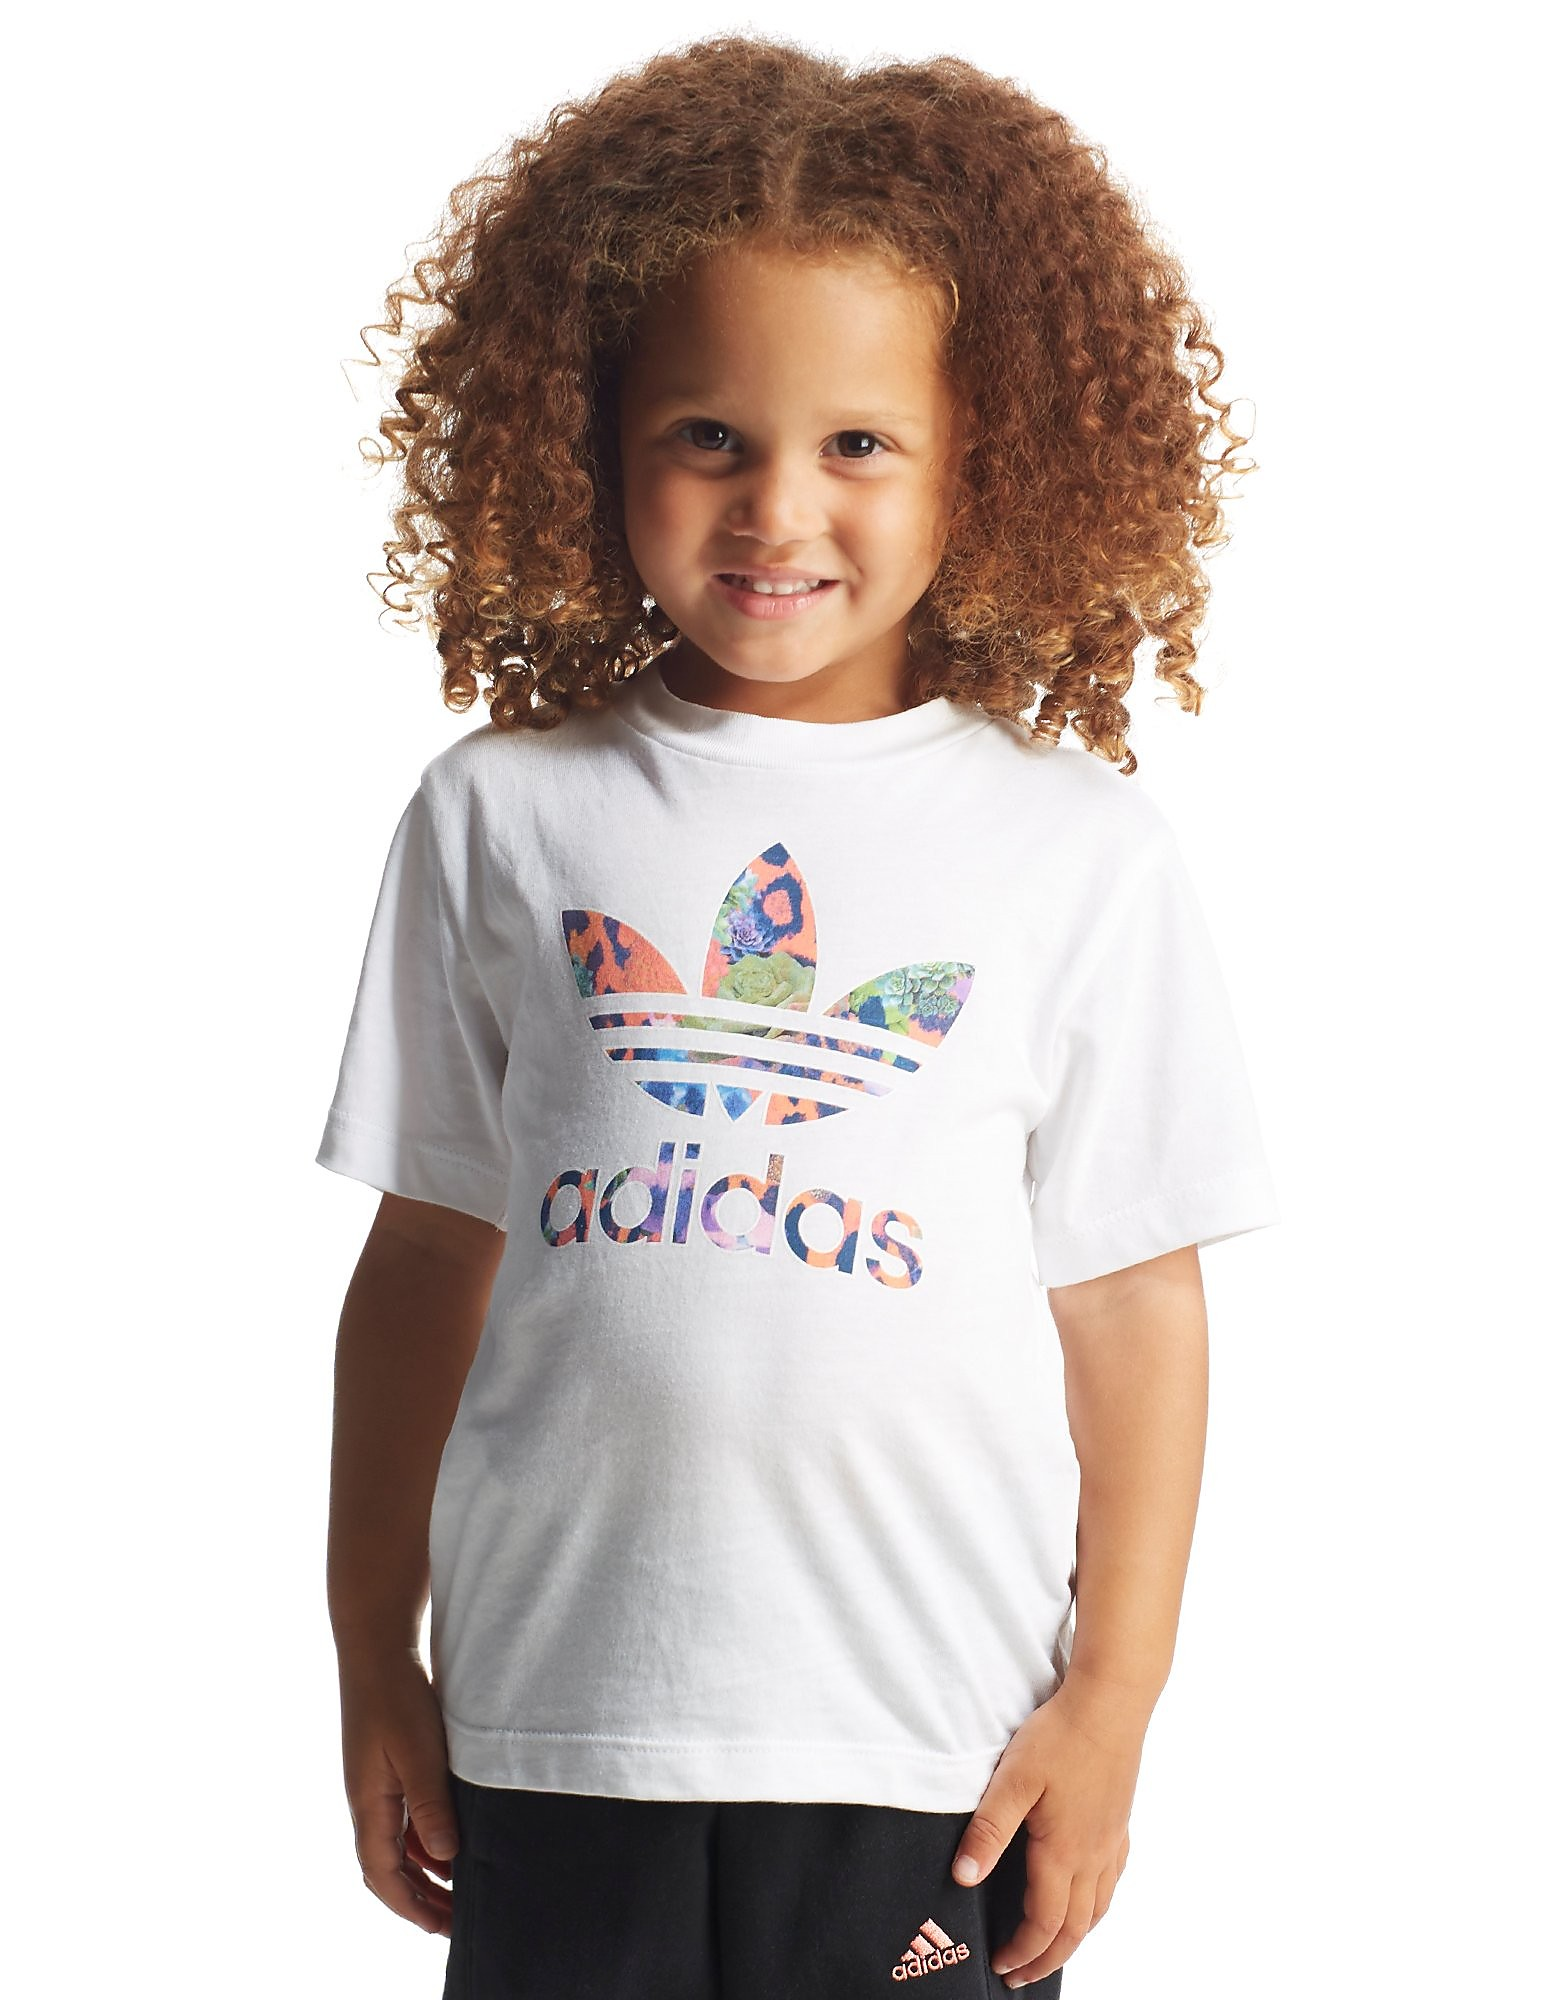 adidas Originals T-Shirt Farm fille bébé